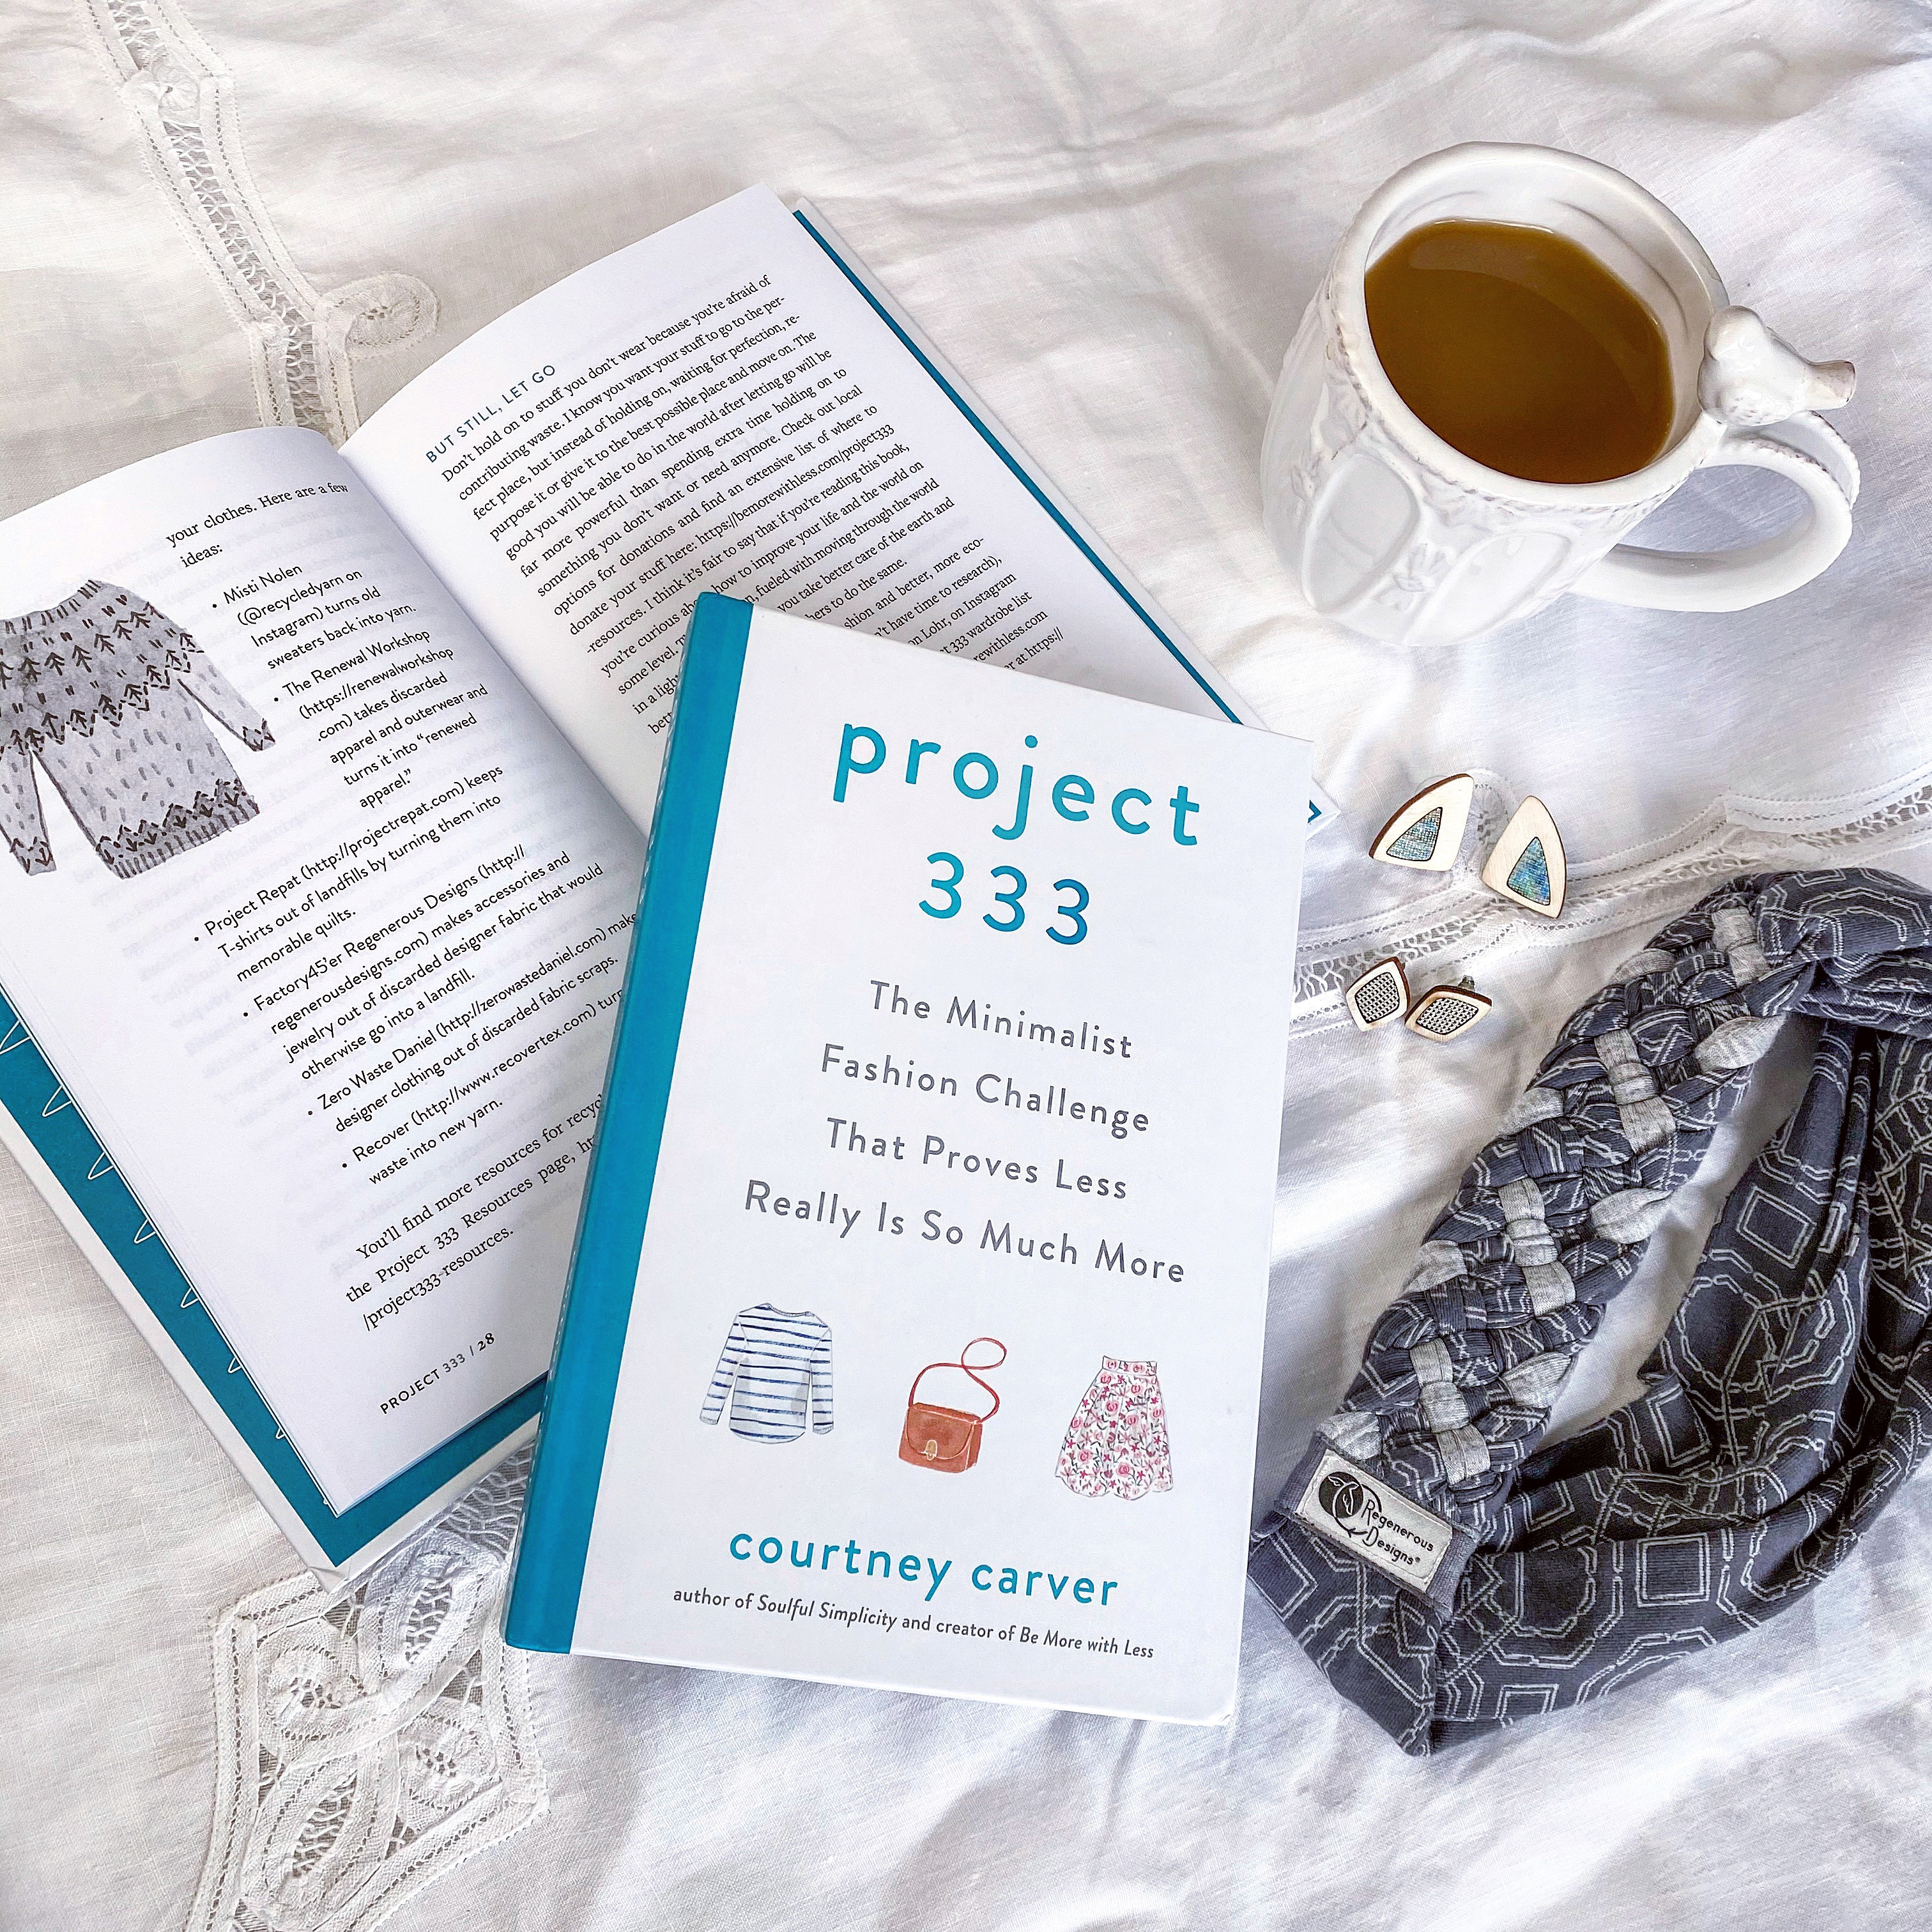 The book, Project 333, opened to the page featuring RegenerousDesigns